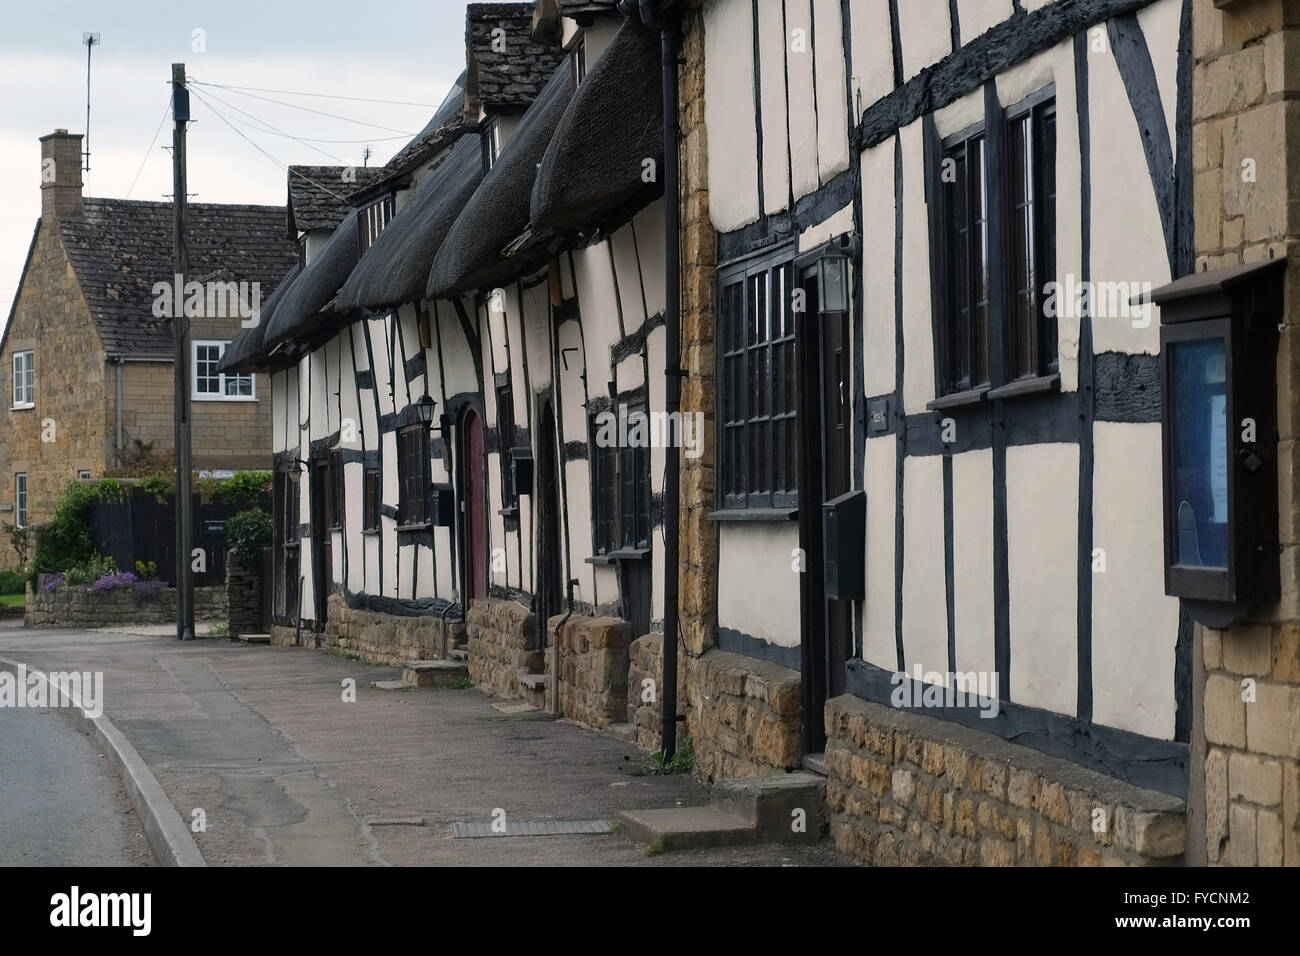 Row of thatched cottages on the High Street in Mickleton, Gloucestershire, England, UK. Stock Photo